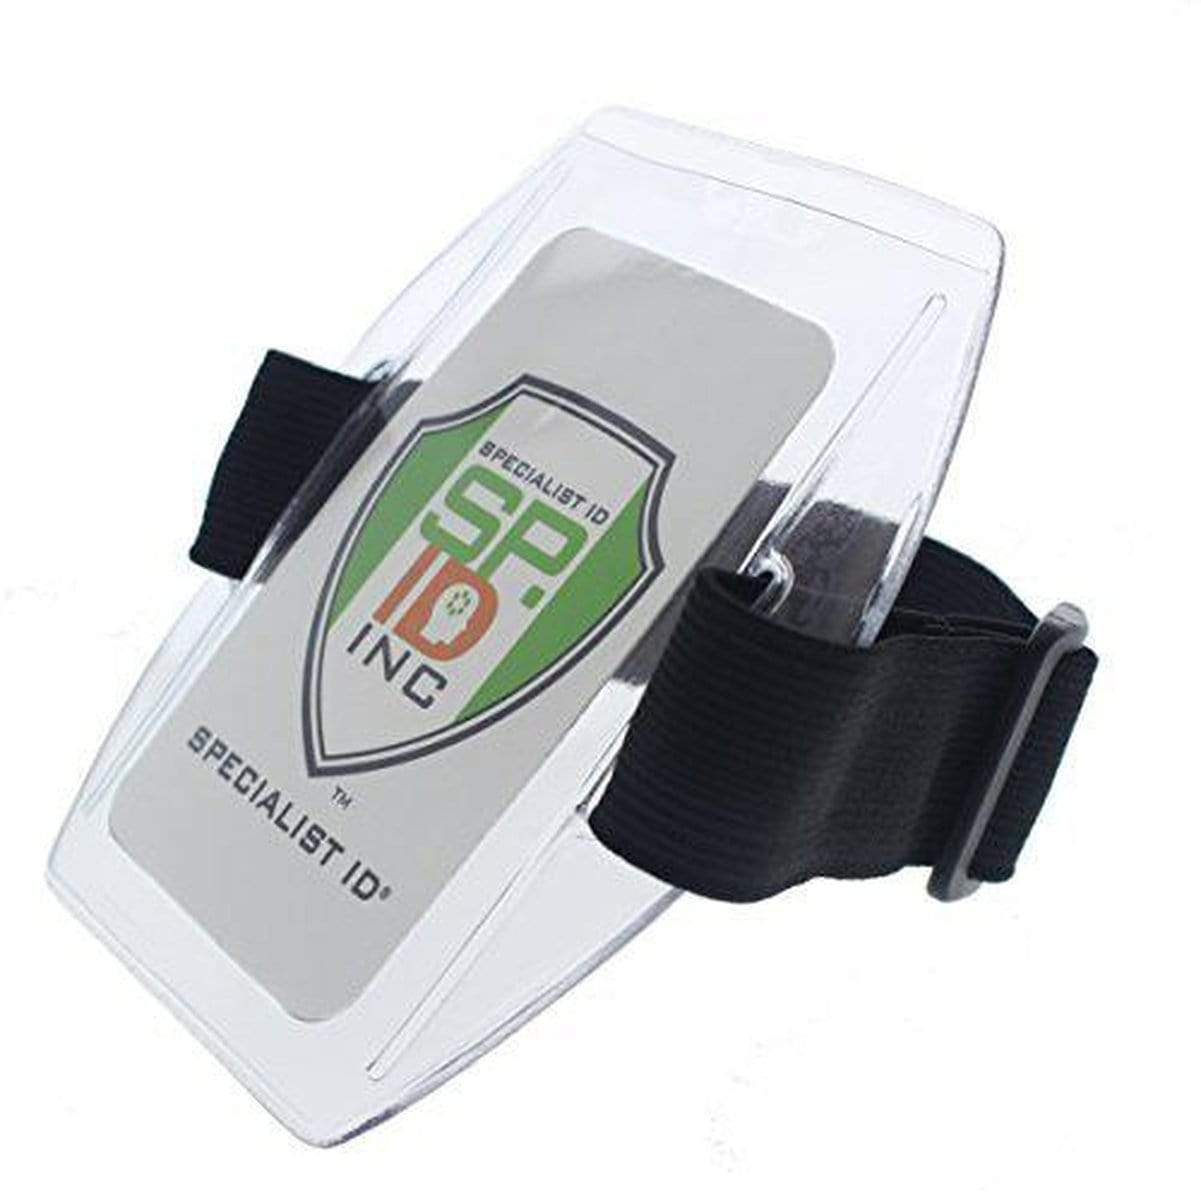 Black Vertical Armband ID Badge Holders with Elastic Band and Hook and Loop Clasp (ABH-V) ABH-V-BLACK